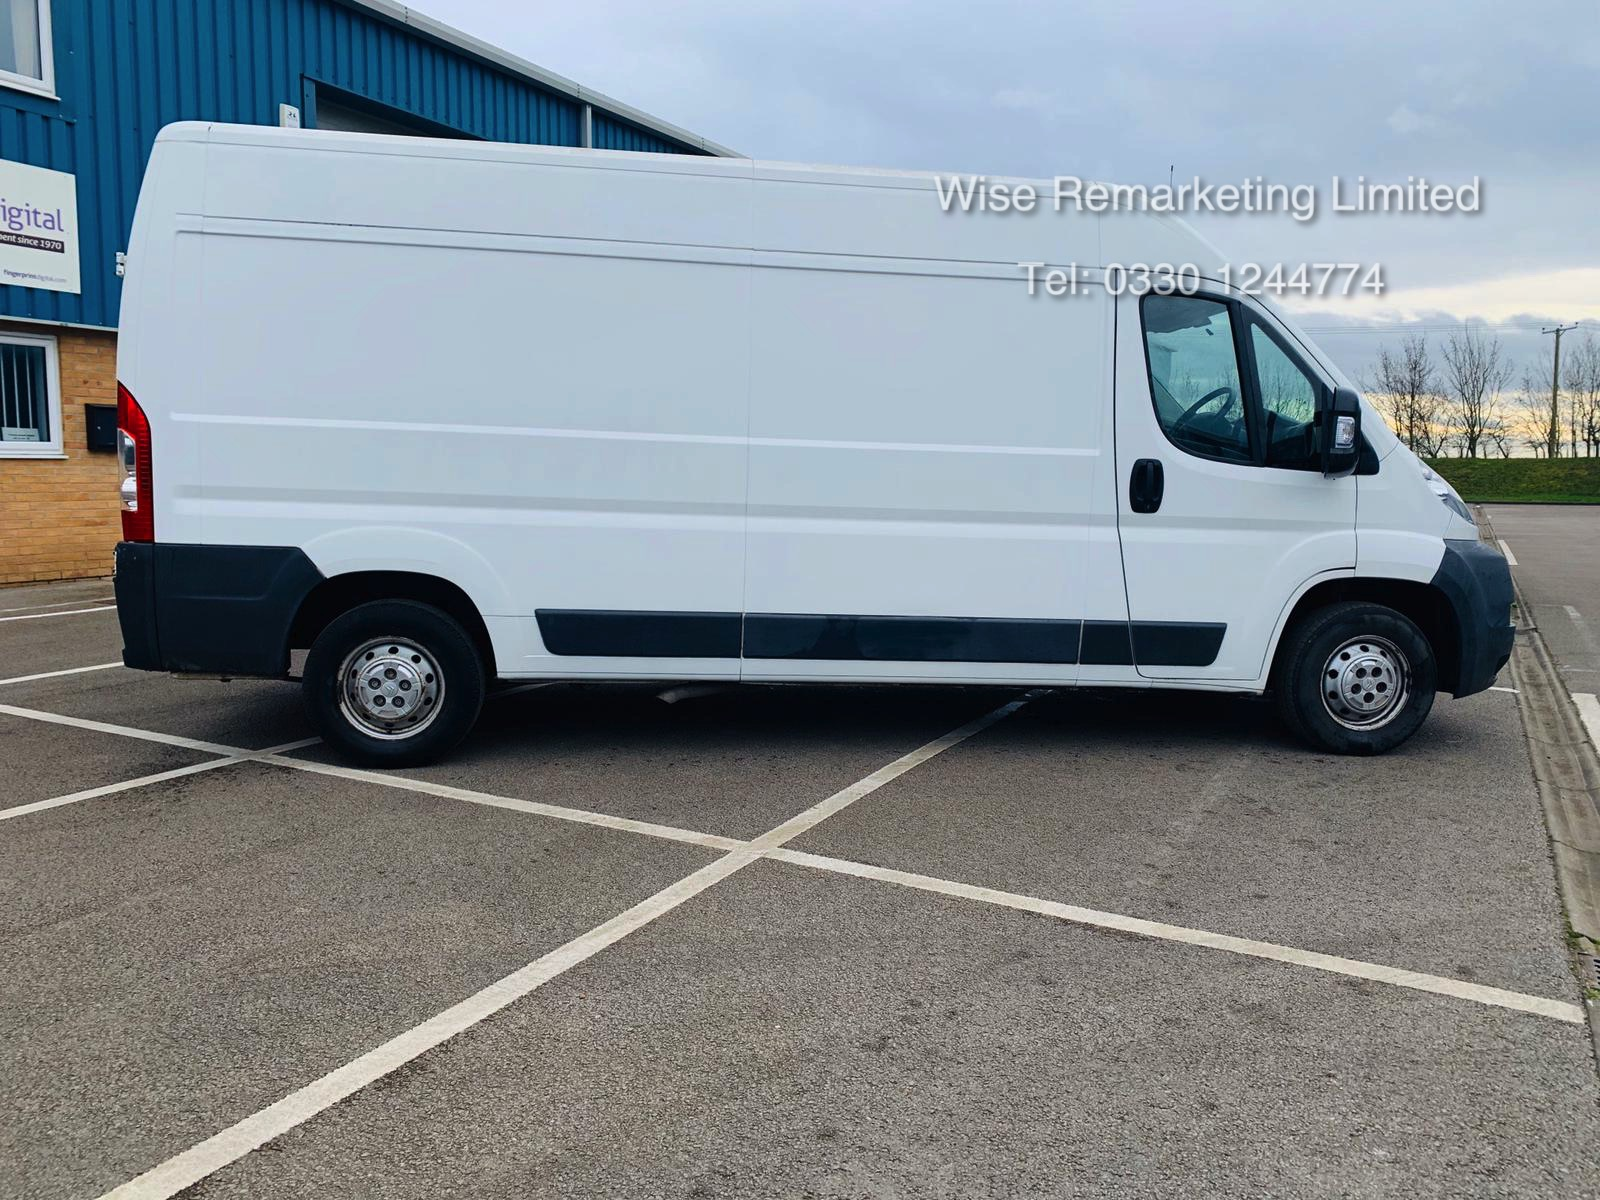 Citroen Relay 35 2.2 HDi (130 BHP) LWB 2012 12 Reg - 6 Speed - Ply Lined SAVE 20% NO VAT - Image 6 of 20